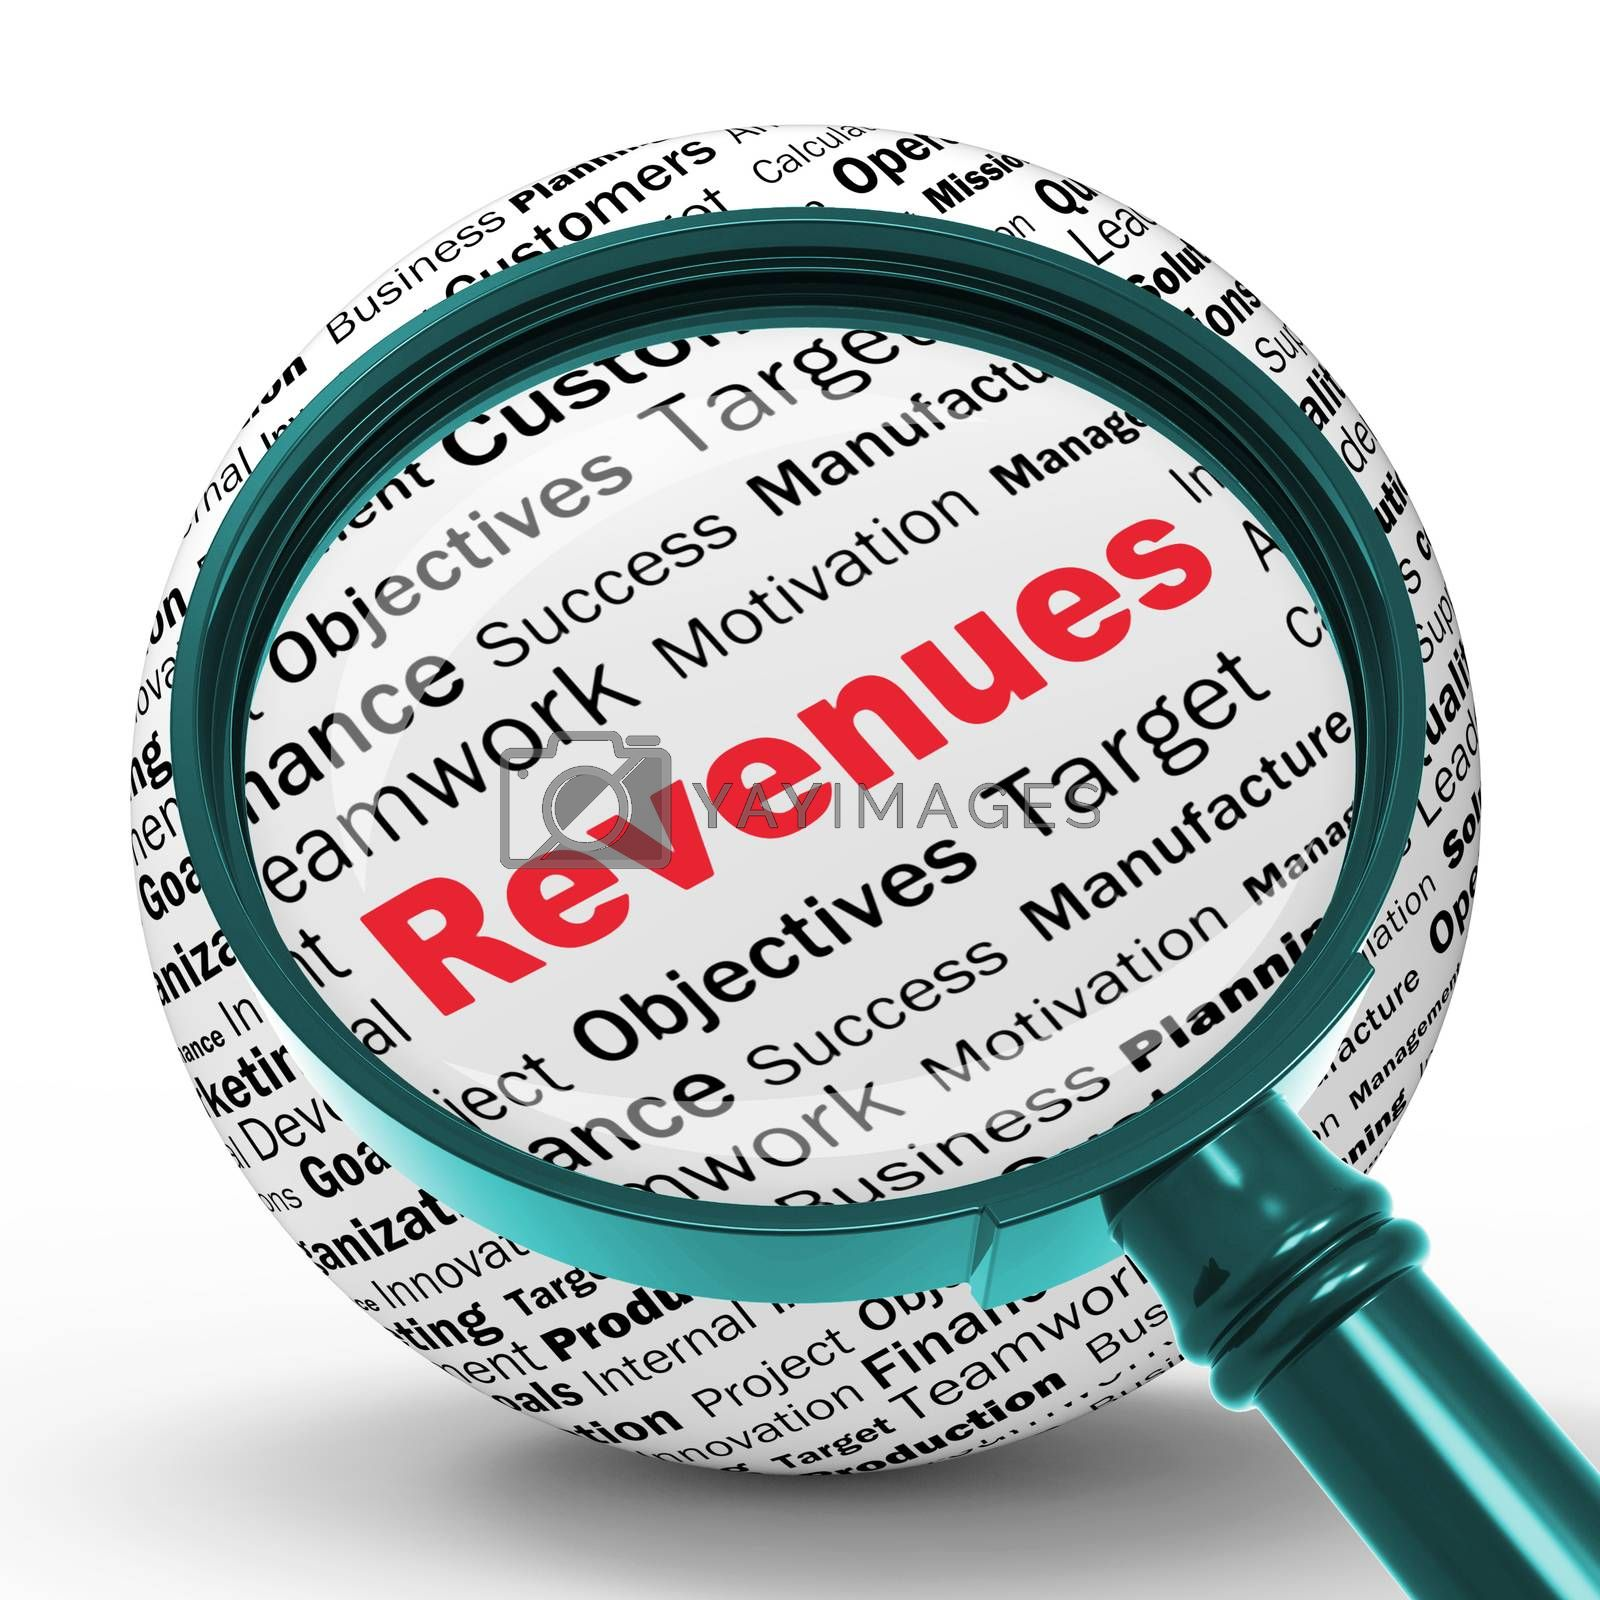 Revenues Magnifier Definitions Shows Financial Growth Or Improve by stuartmiles